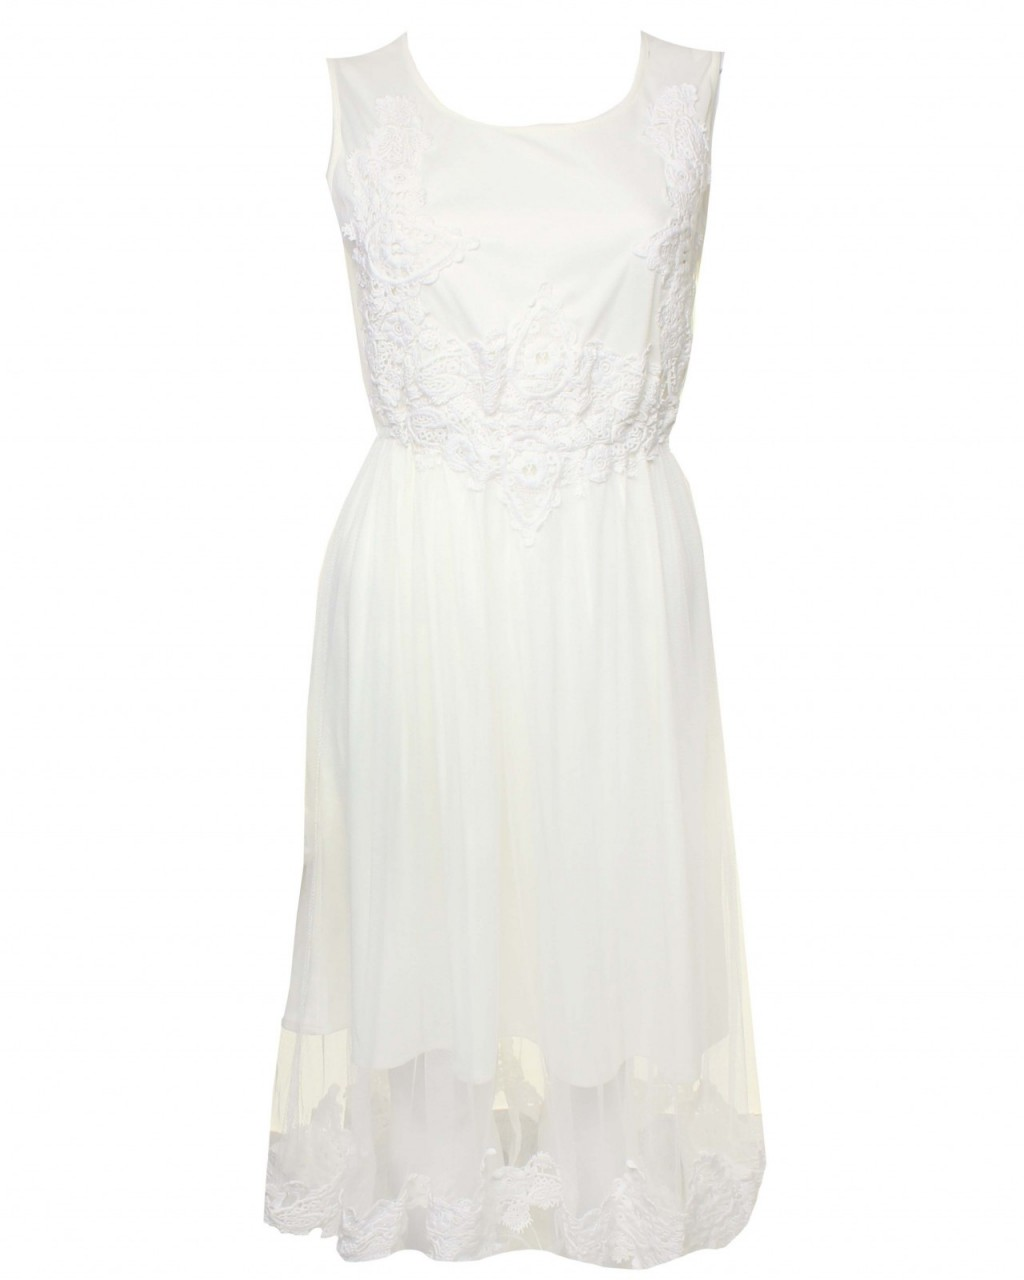 LOVE Ivory Mesh Midi Dress With Crochet Top